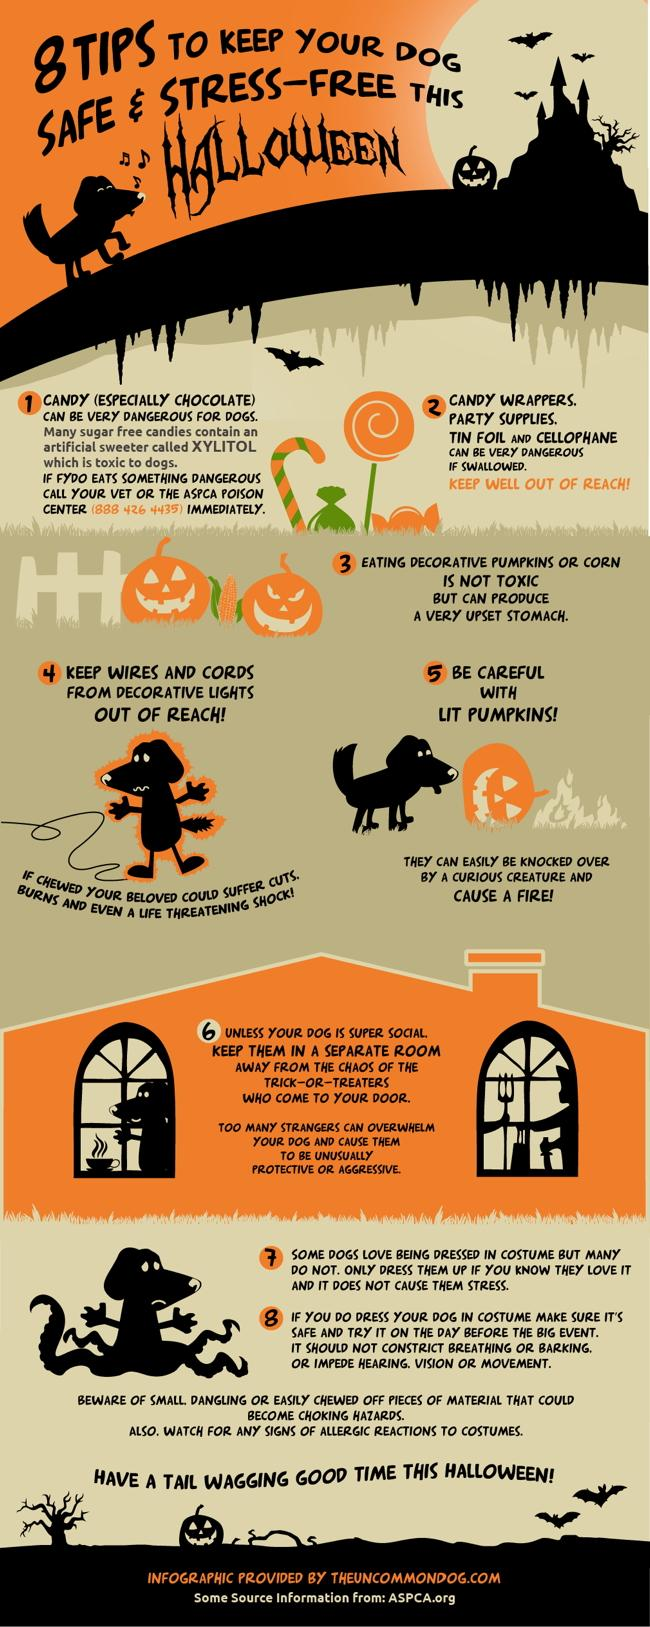 ESFI: Halloween Safety. It's Not a Trick. Treat Yourself to Safety